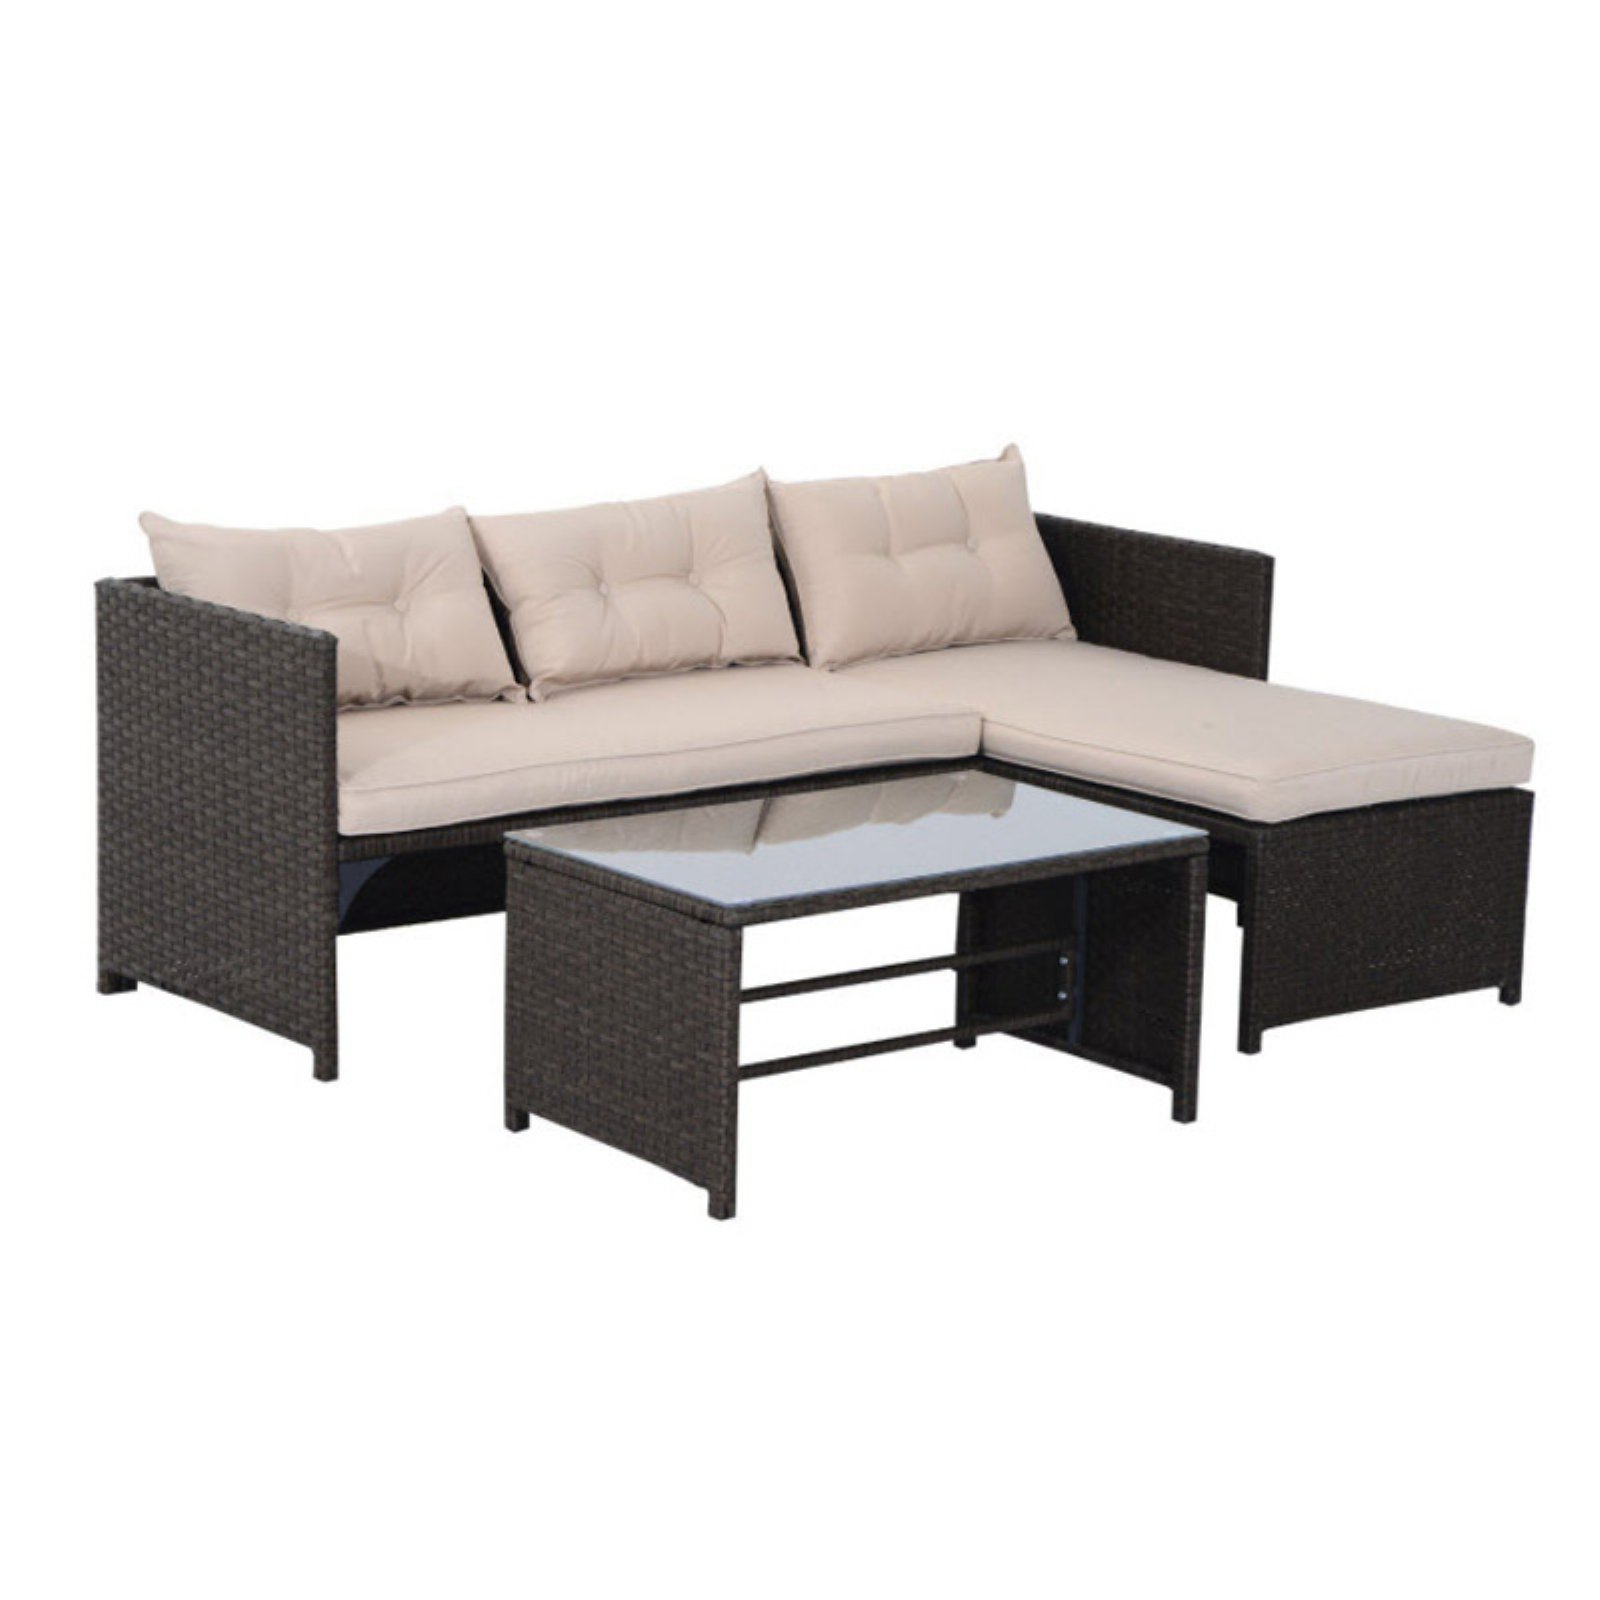 Outsunny Rattan Wicker 3 Piece Outdoor Conversation Set with Coffee Table by Aosom LLC